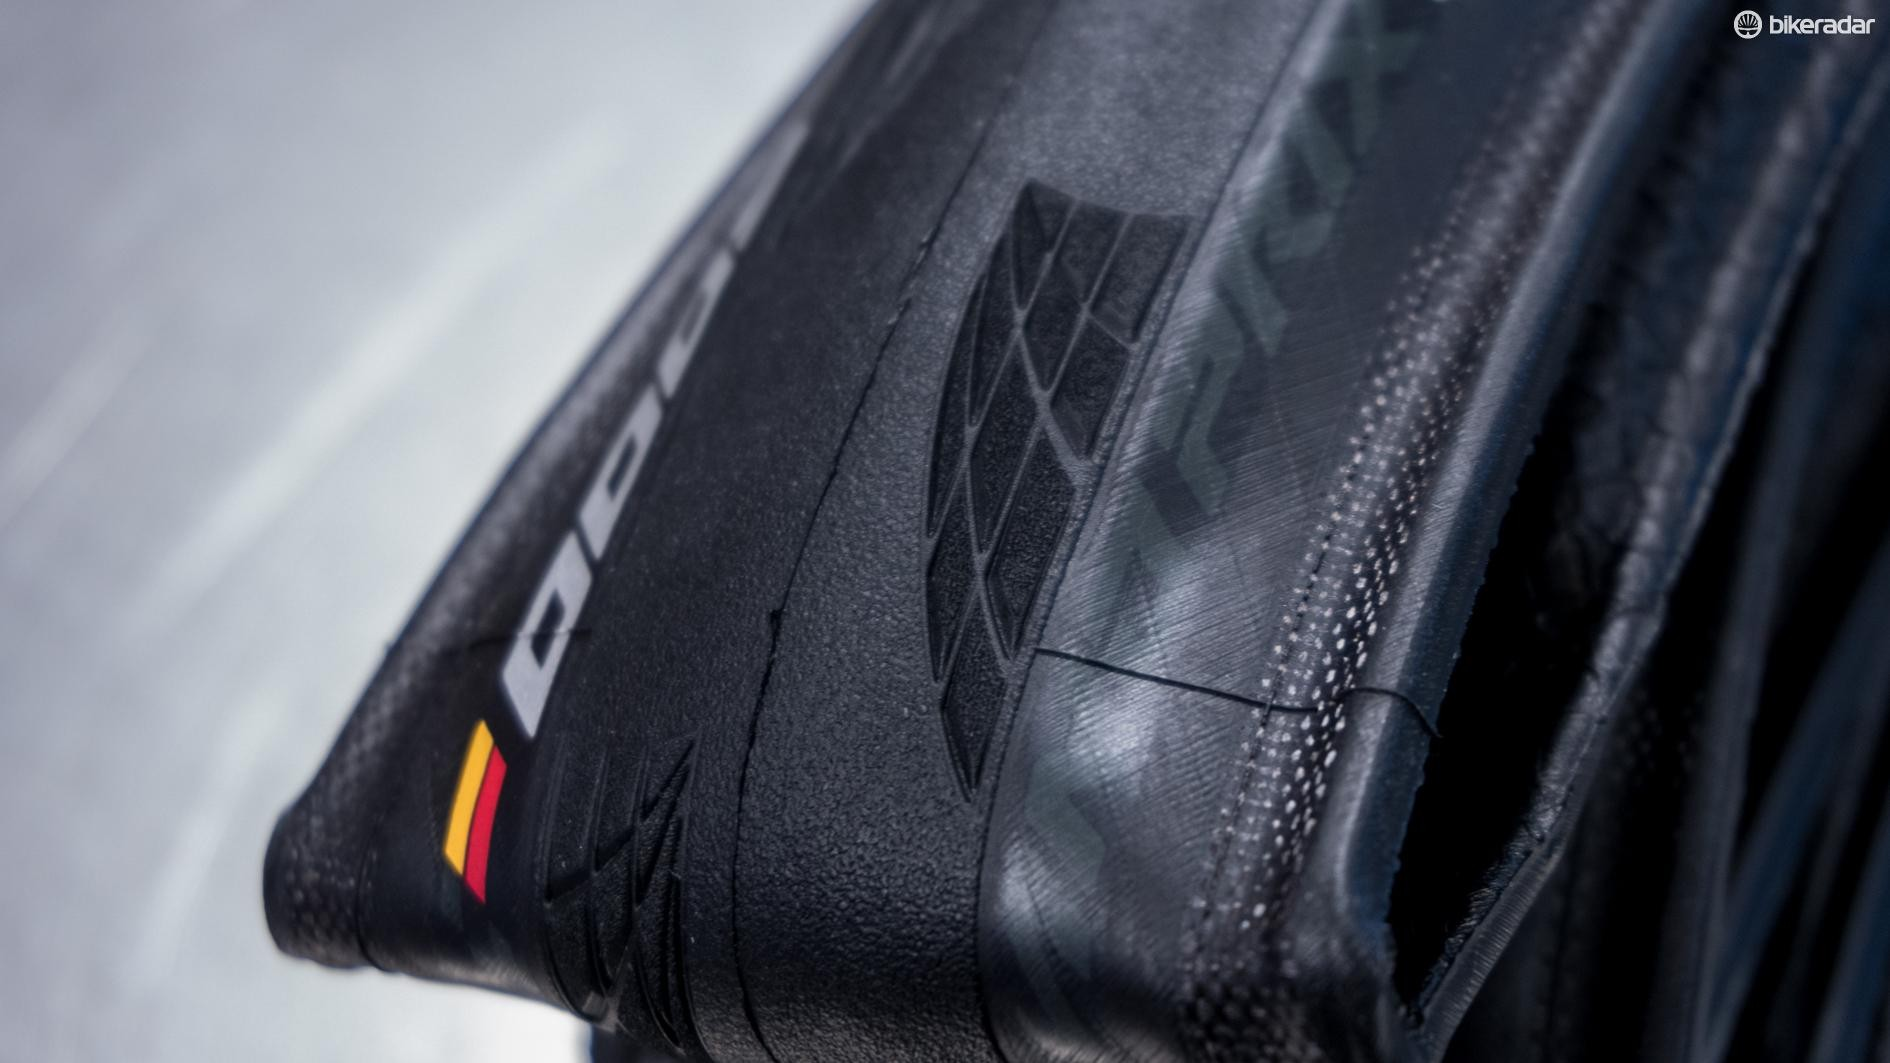 The shoulder tread of the tyres are given a laser treatment to improve grip